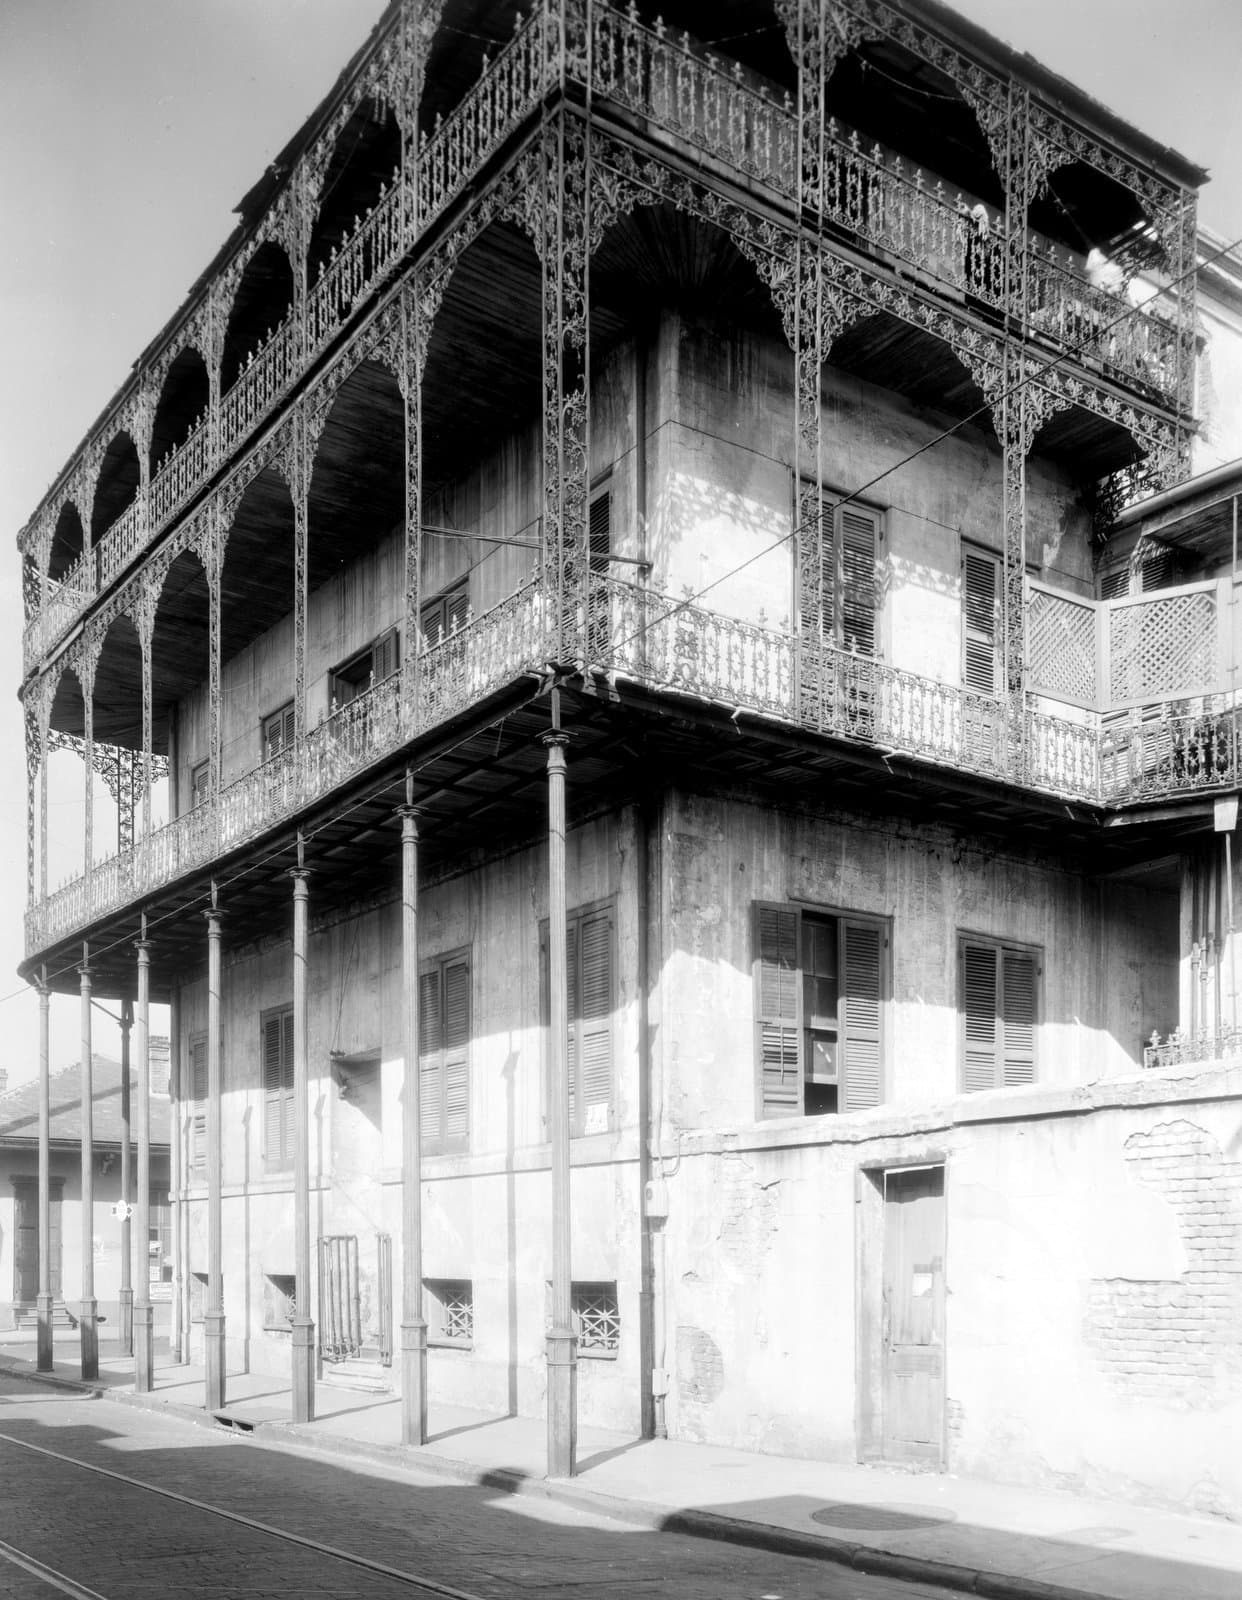 Vintage Southern wrought-iron balcony at Le Pretre Mansion New Orleans, Louisiana (1937)